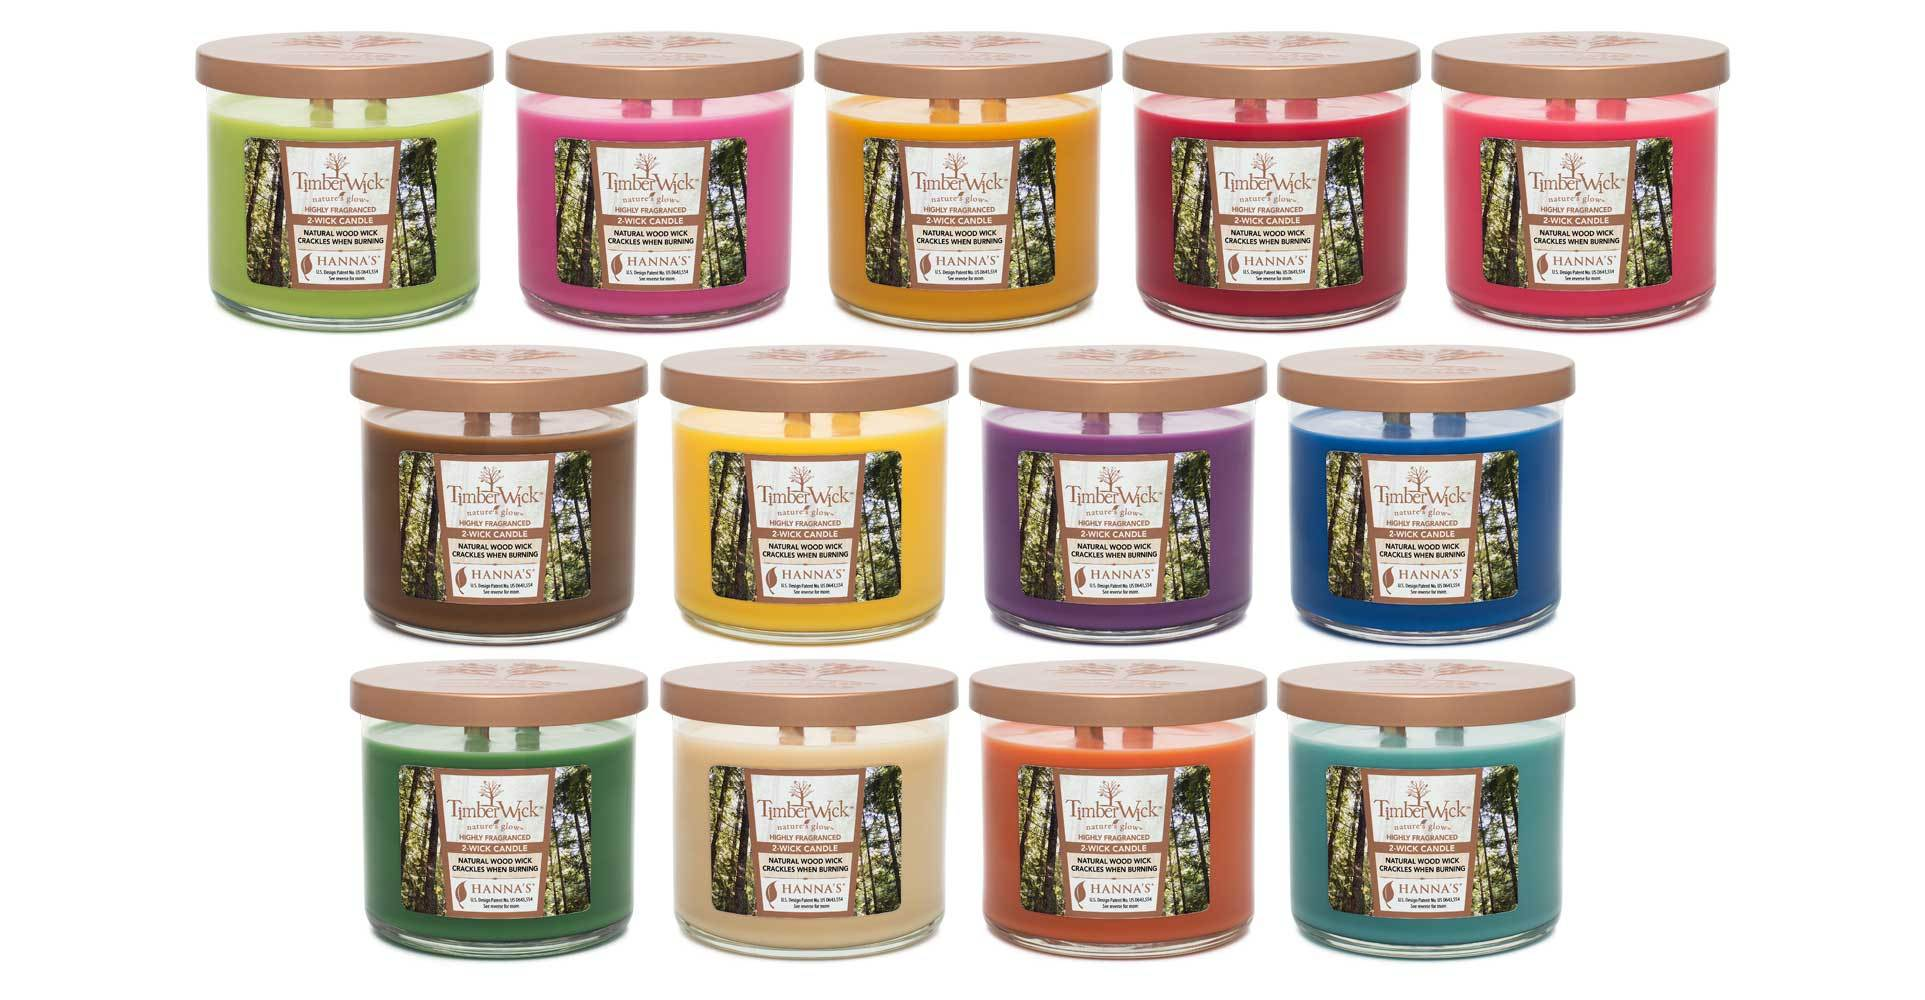 Timberwick Cranberry Mandarin Scented 2 wick Candle